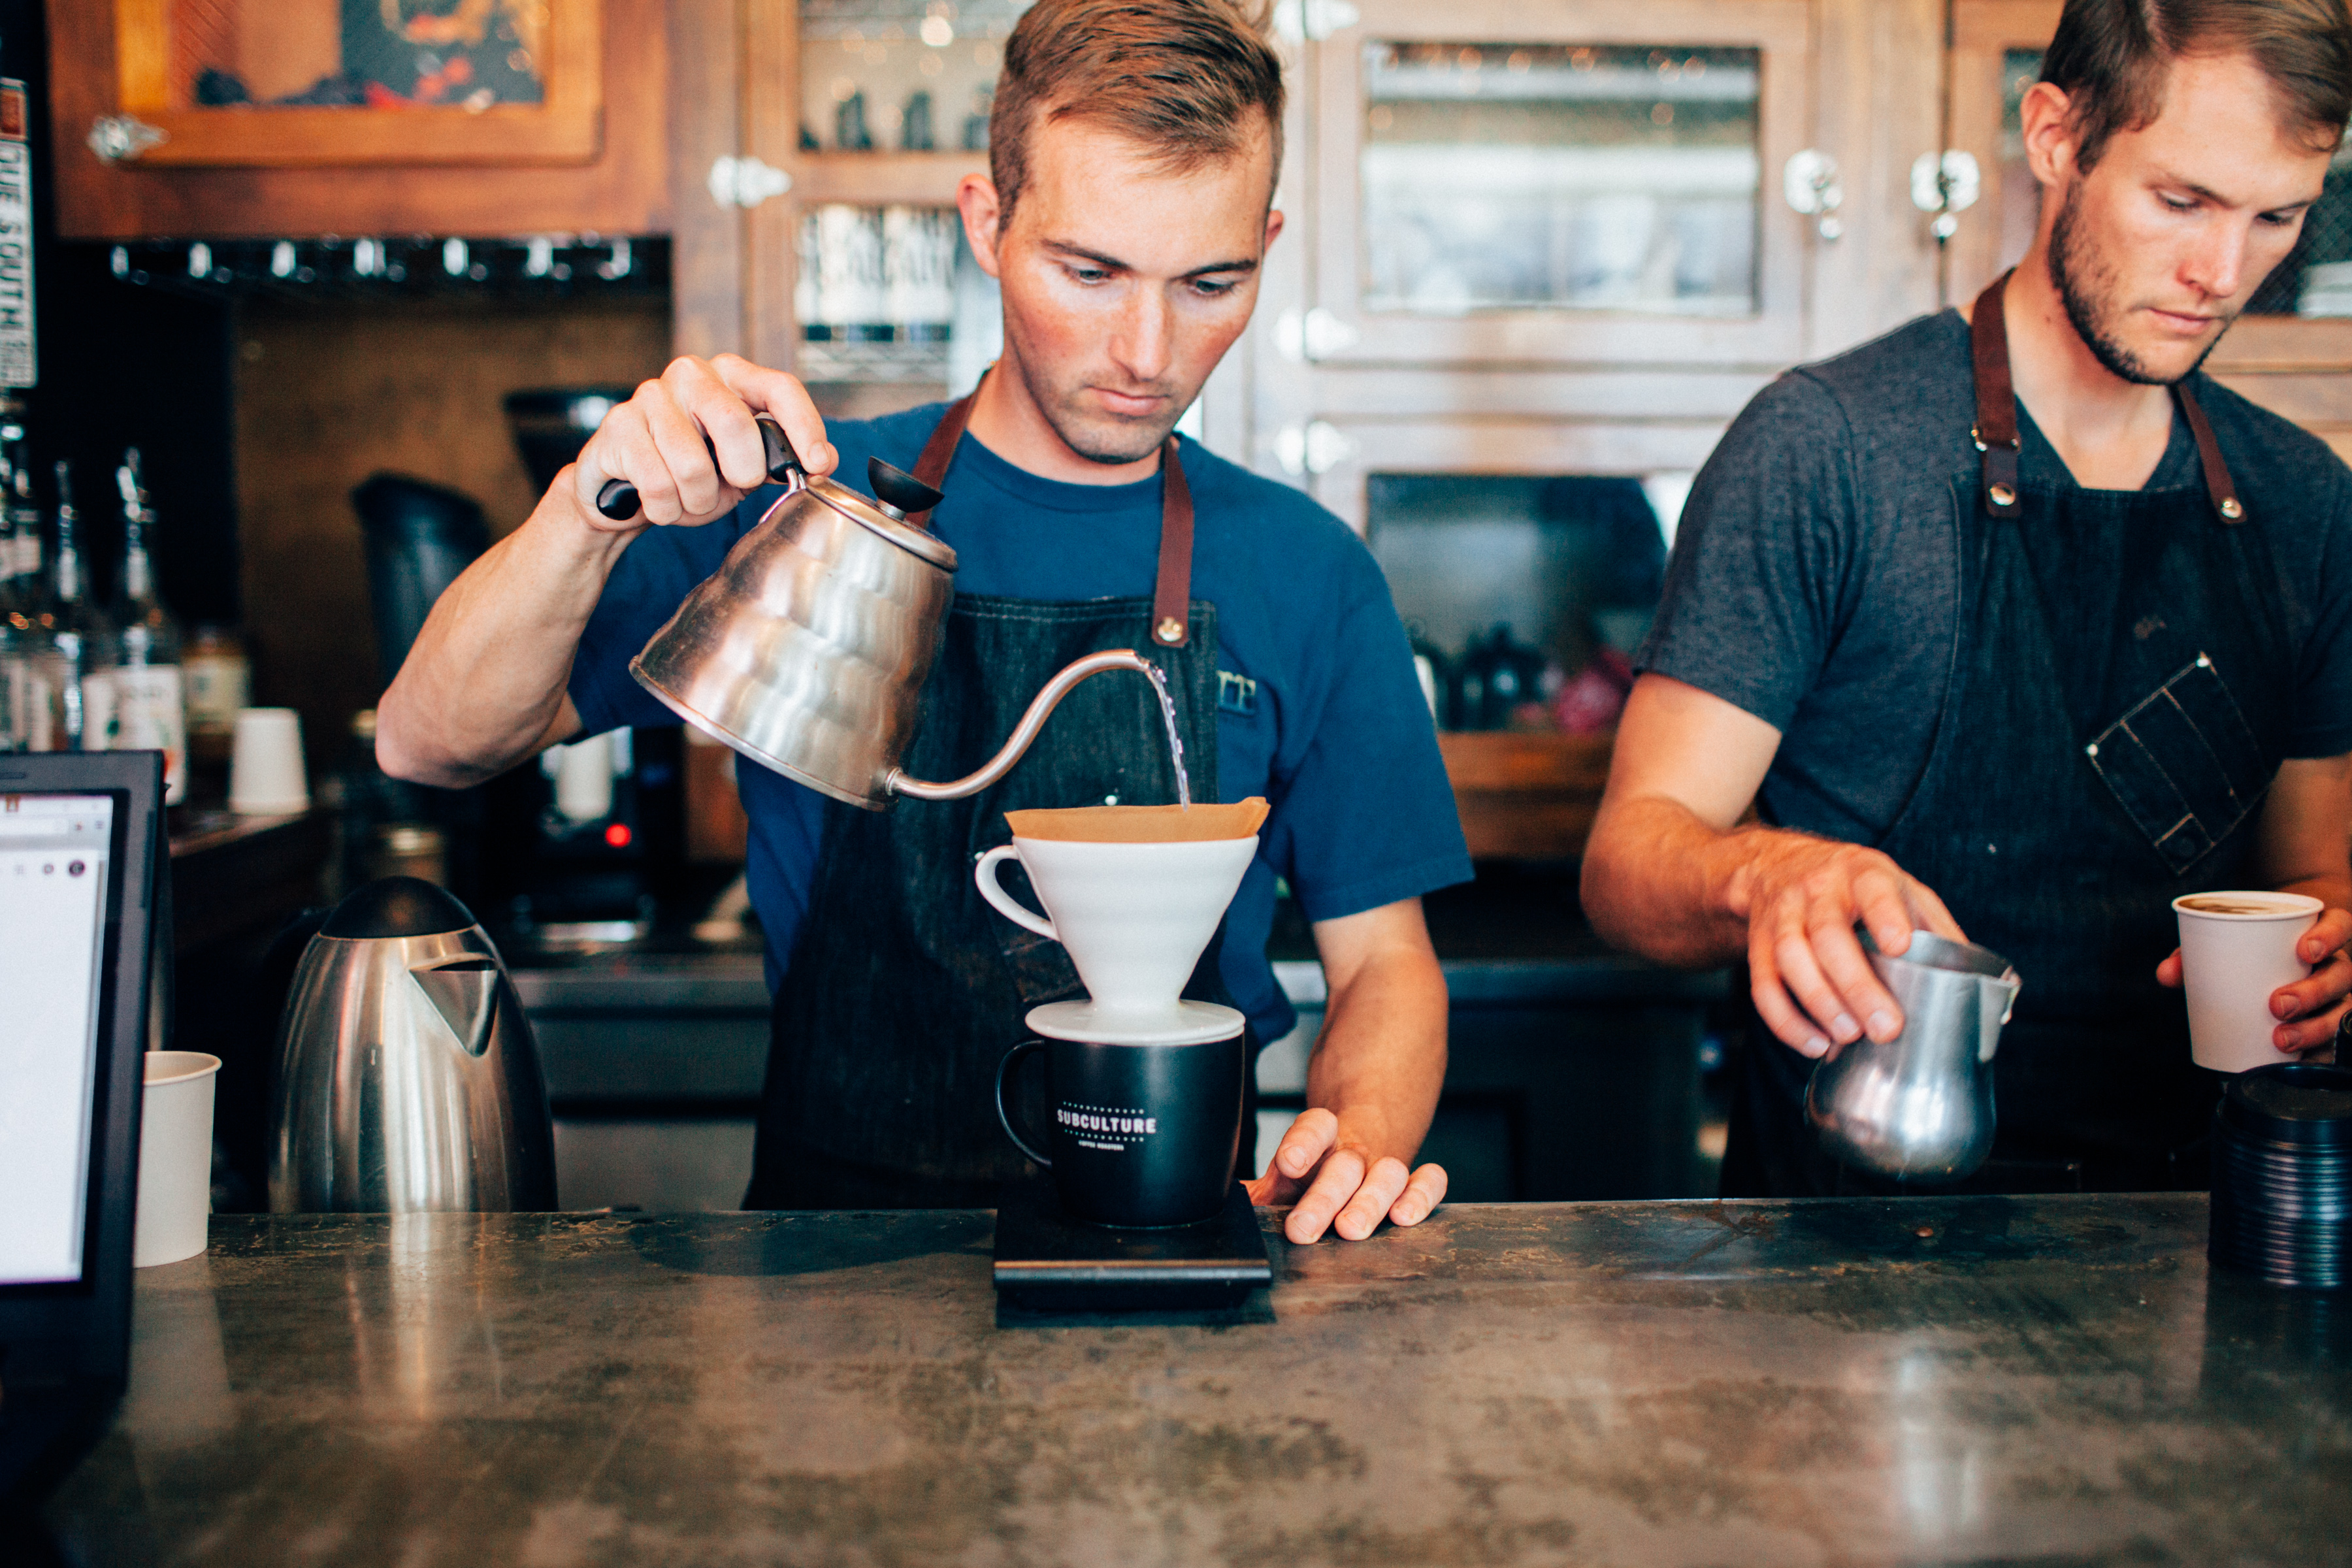 Brewing pour over coffee in a cafe